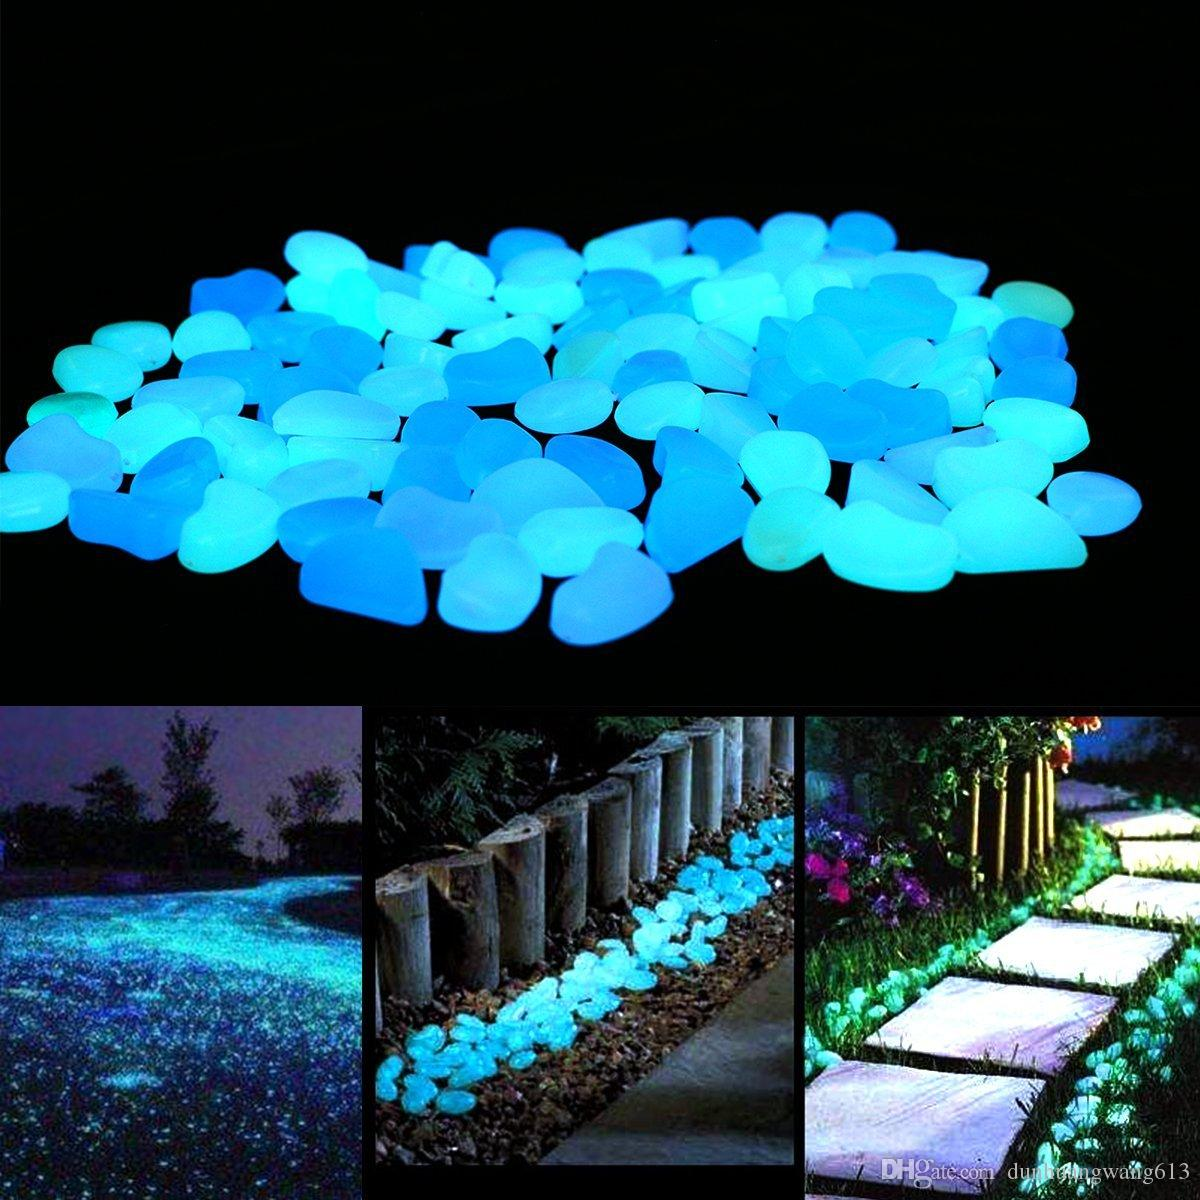 glow in the dark garden pebbles stones for yard and walkways decor diy decorative luminous stones luminous stone decorative stones online with 766piece - Glow In The Dark Garden Pebbles